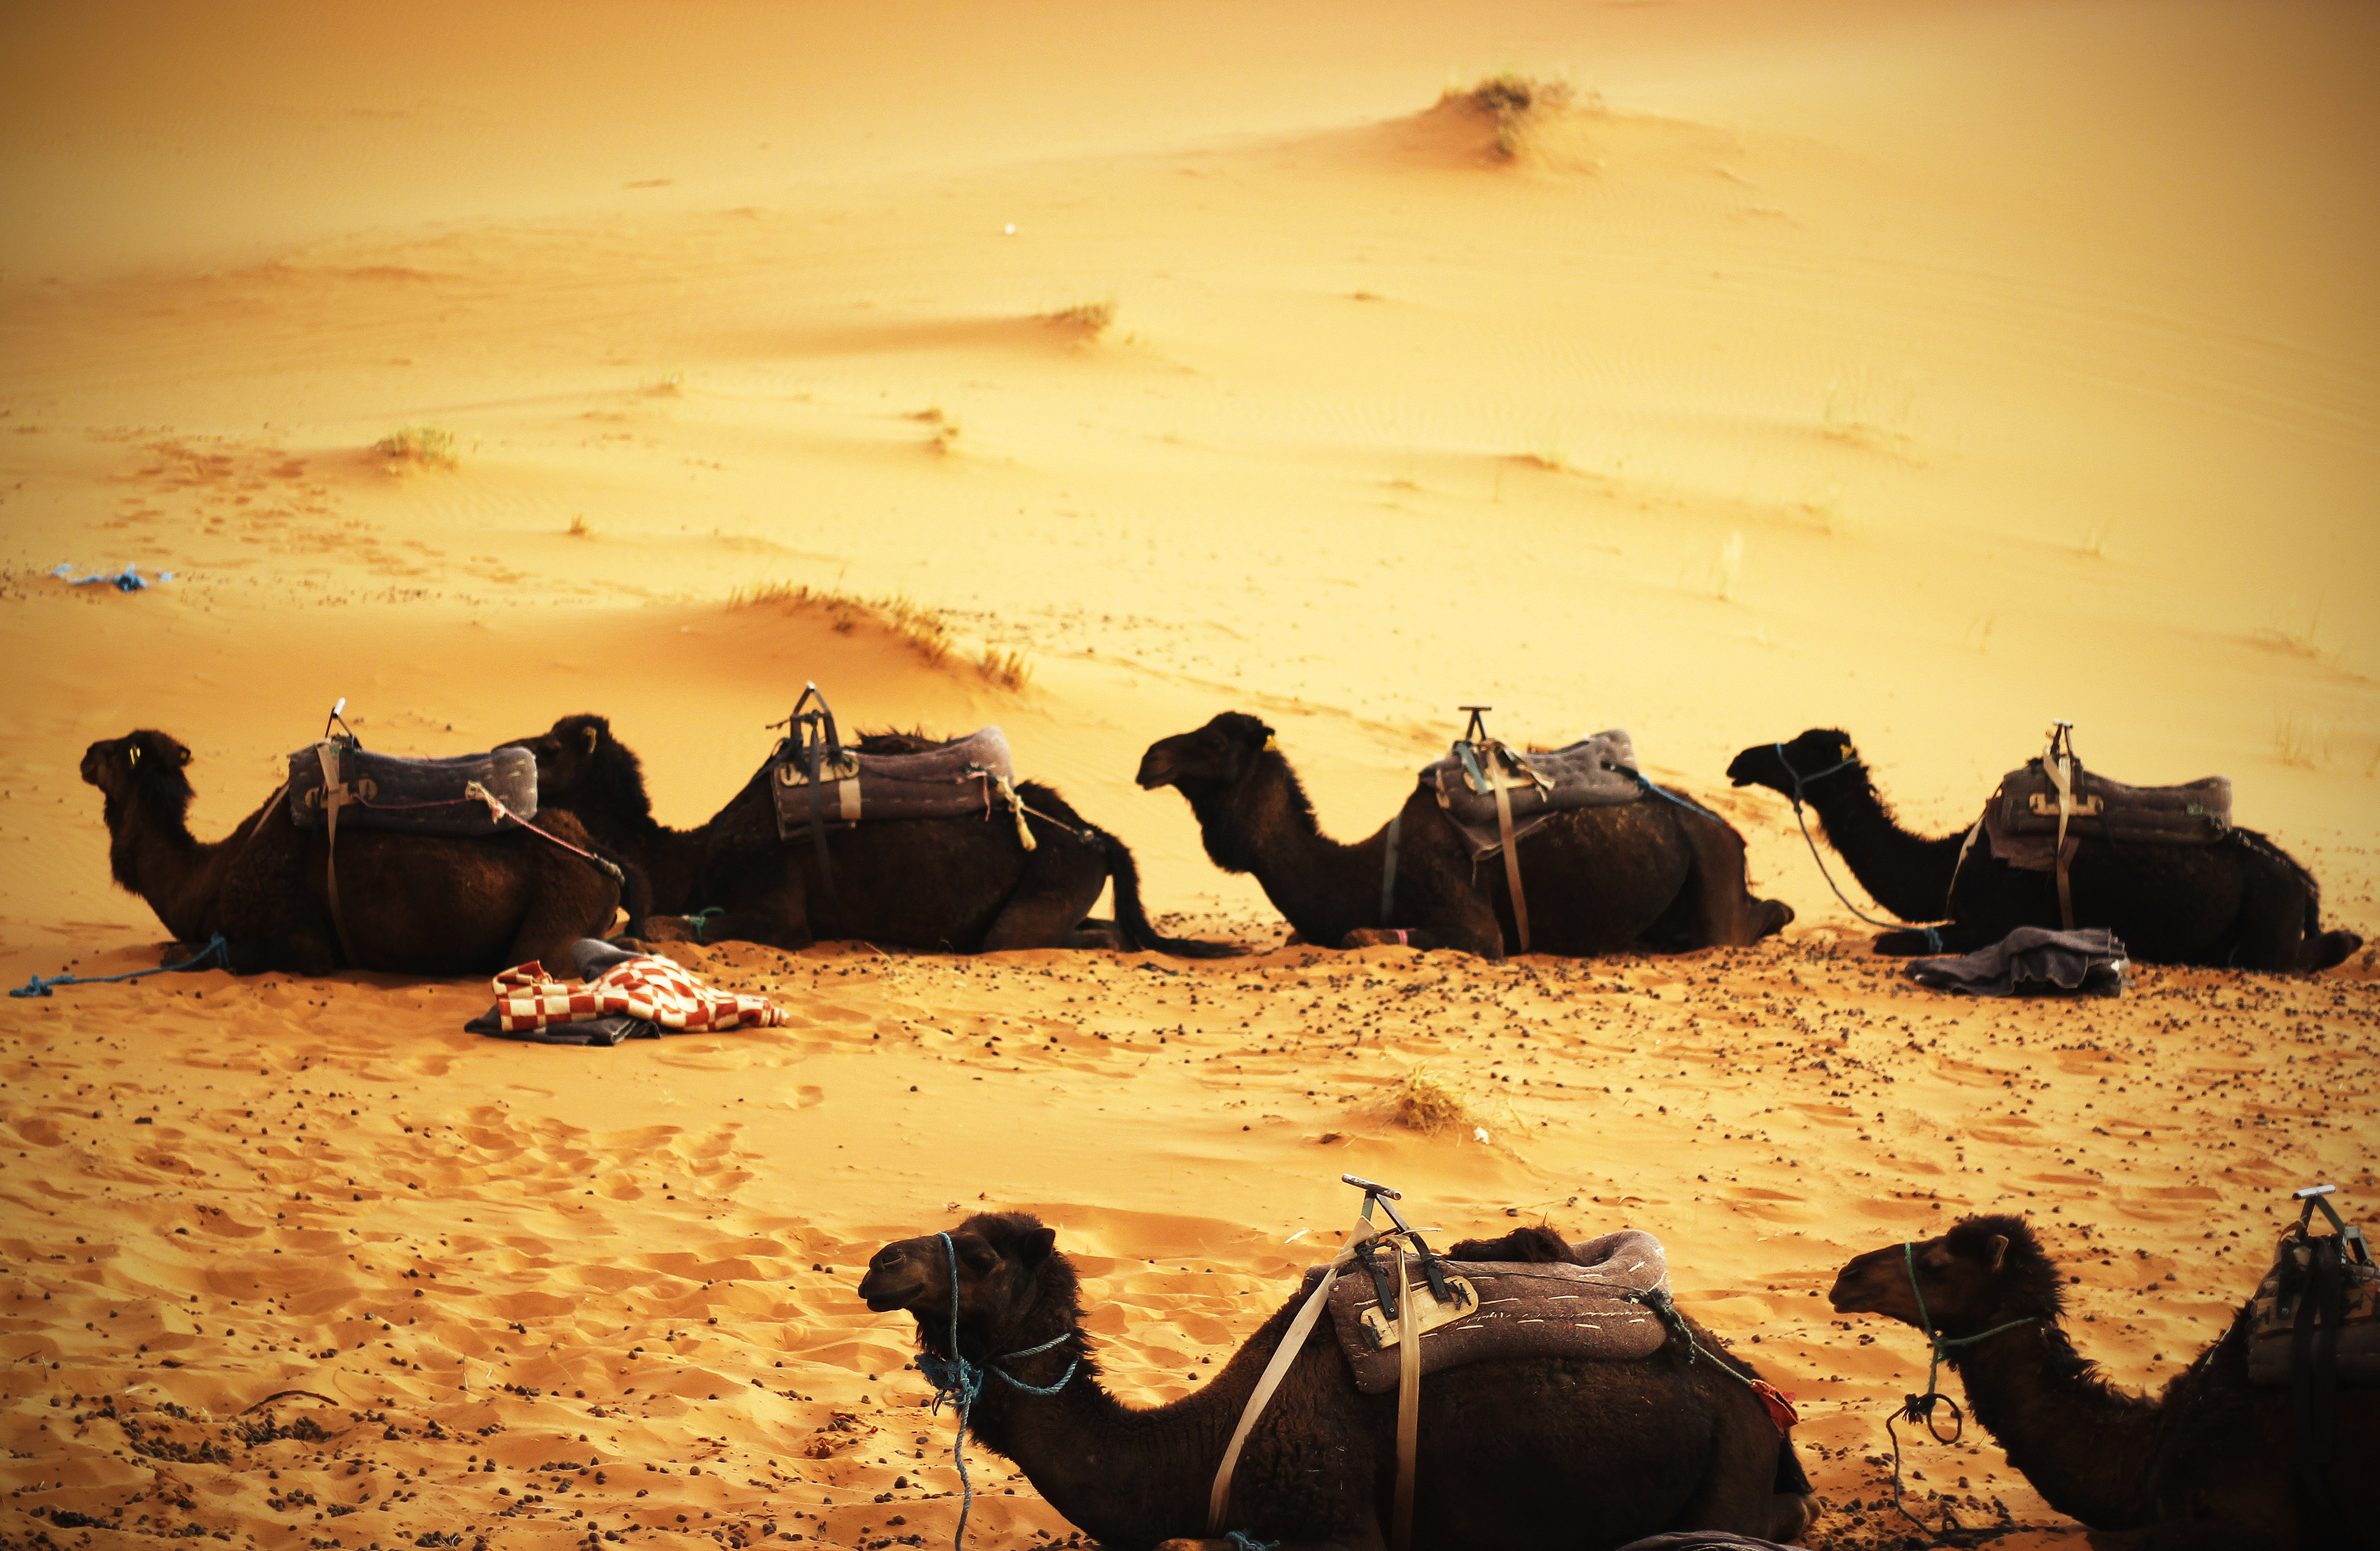 black camels on desert during daytime